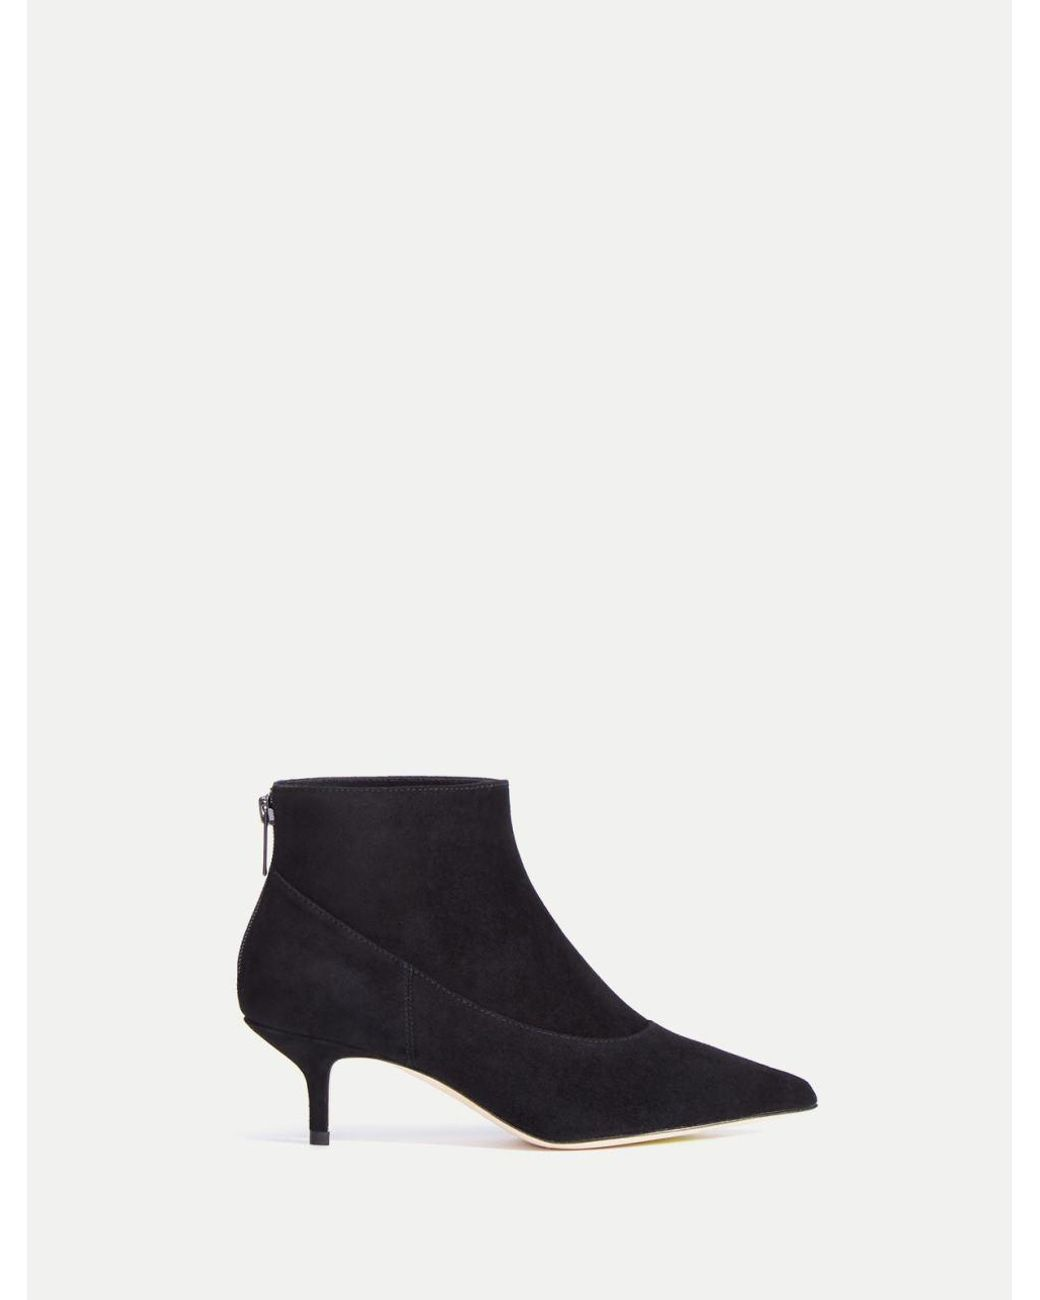 BRAND NEW HALSTON HERITAGE SHEILA BLACK SUEDE  BOOT COACH $438 REDUCED PRICE